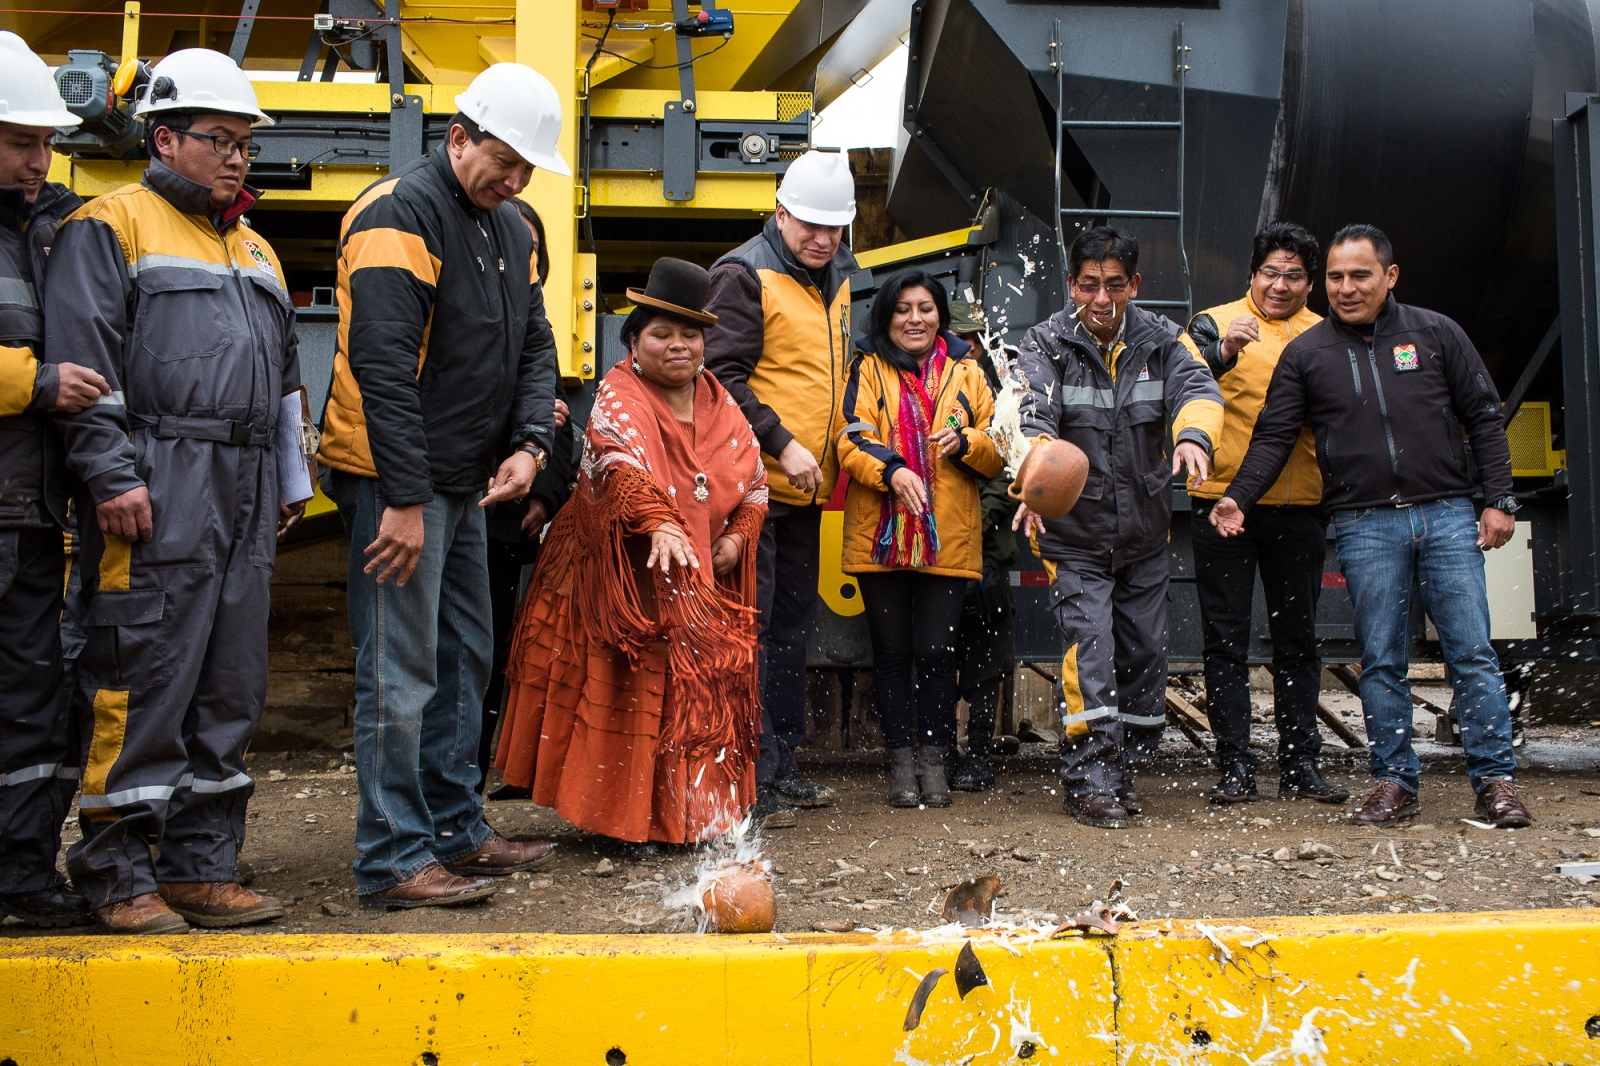 Alderwoman Reveca Sangali and Mayor Soledad Chapeton baptize an asphalt plant in El Alto. After 15 years of abuse—during which Reveca often had to sell merchandise on the streets in order to feed her six children—and an attempt on her life, she left her husband with the children and restarted her life. Through a friendship with the mayor, Reveca slowly became involved with politics, and in 2015 she was elected to a municipal office.